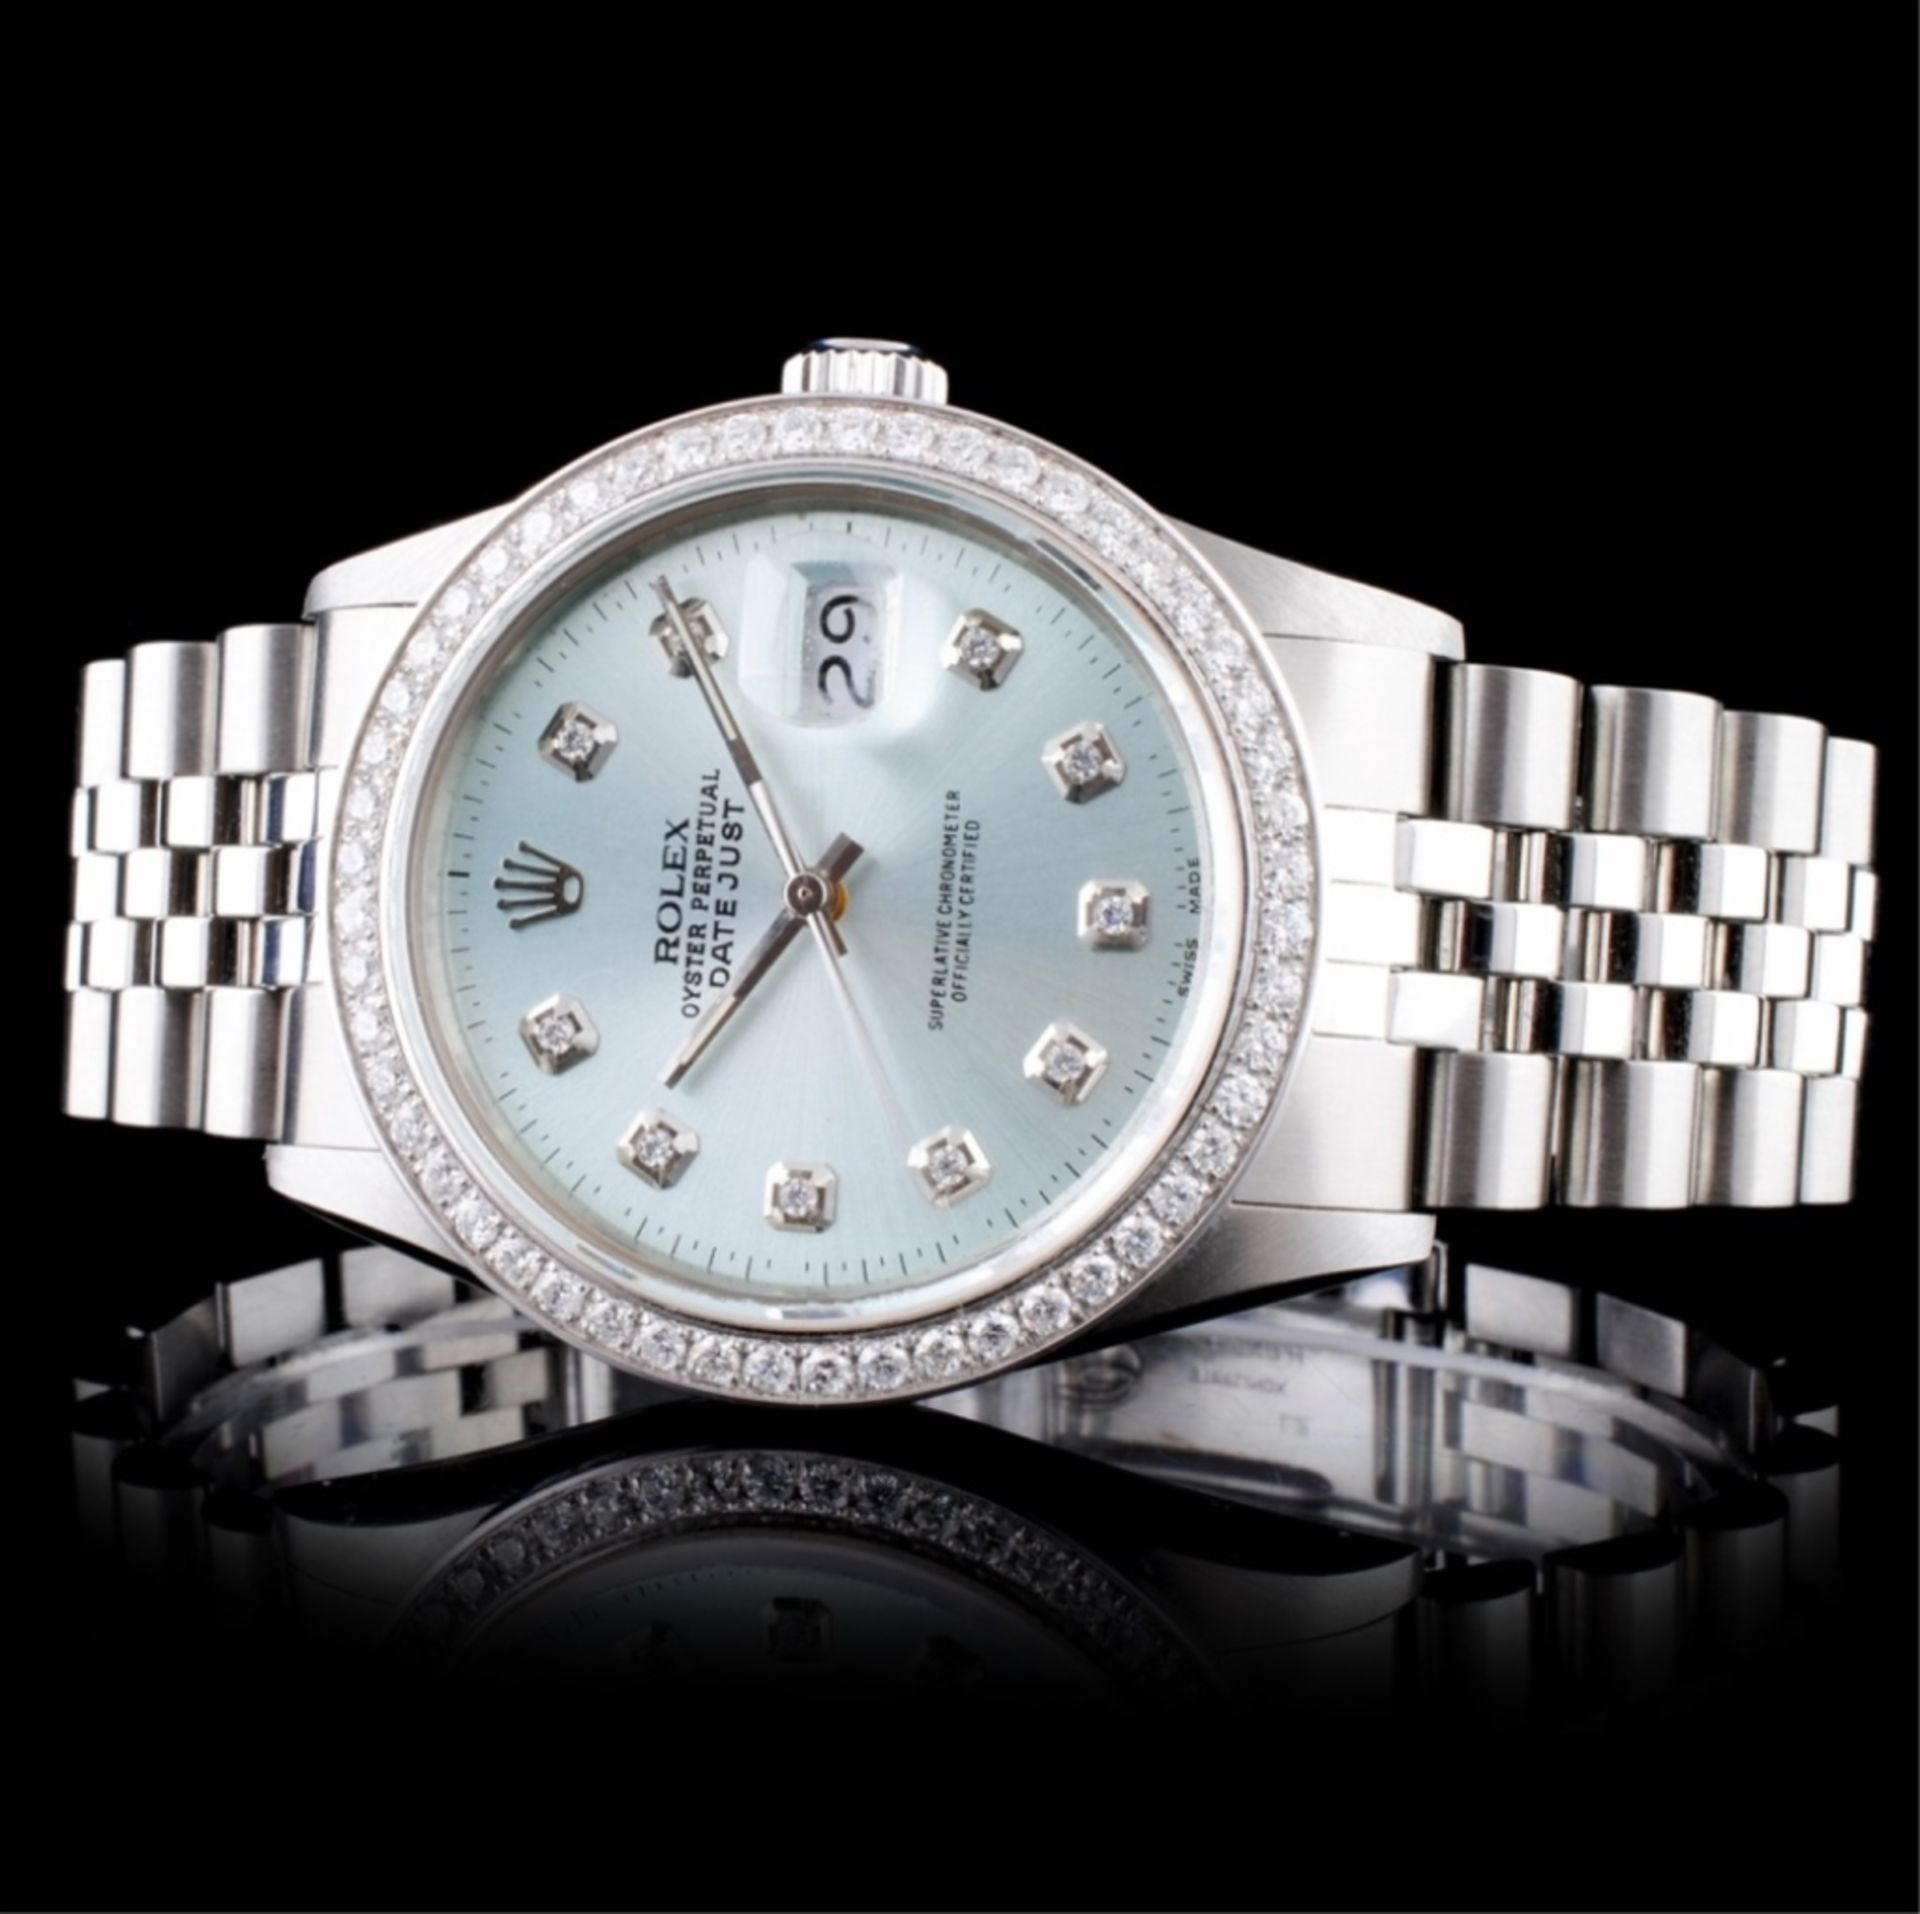 Rolex SS DateJust Diamond 36mm Wristwatch - Image 3 of 6